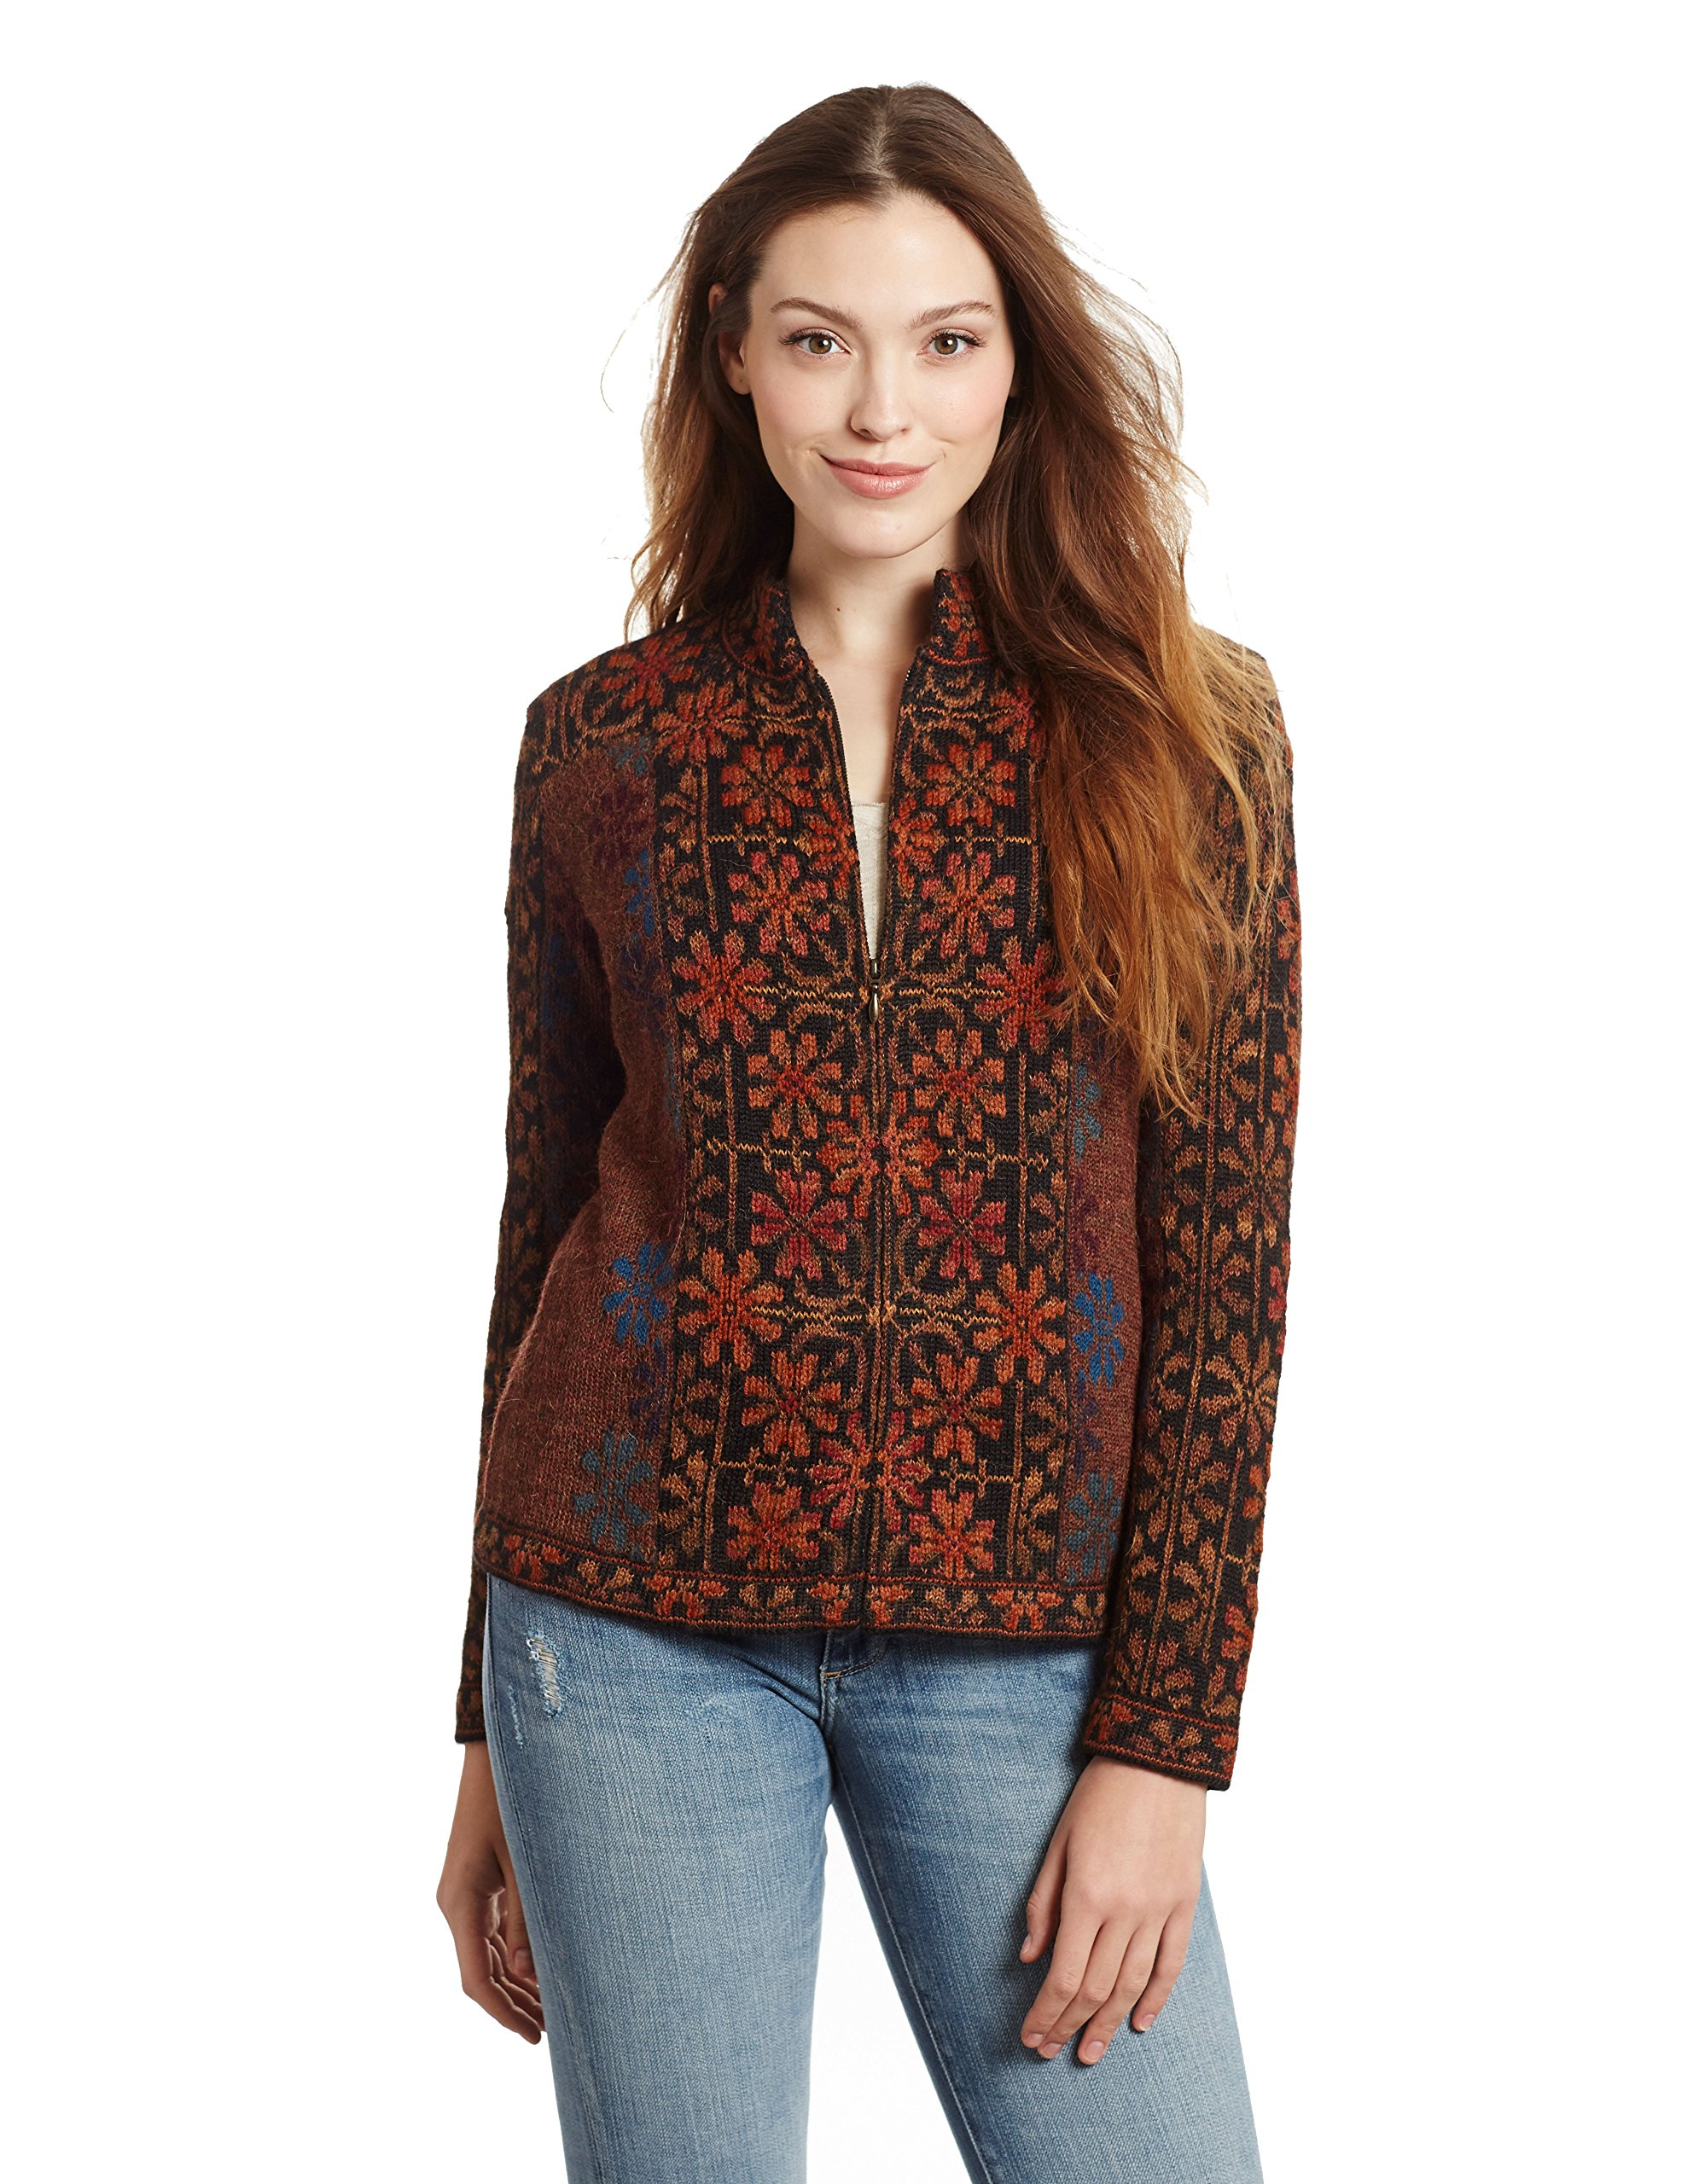 Invisible World Women's 100% Alpaca Floral Cardigan Sweater Ophelia XL by Invisible World